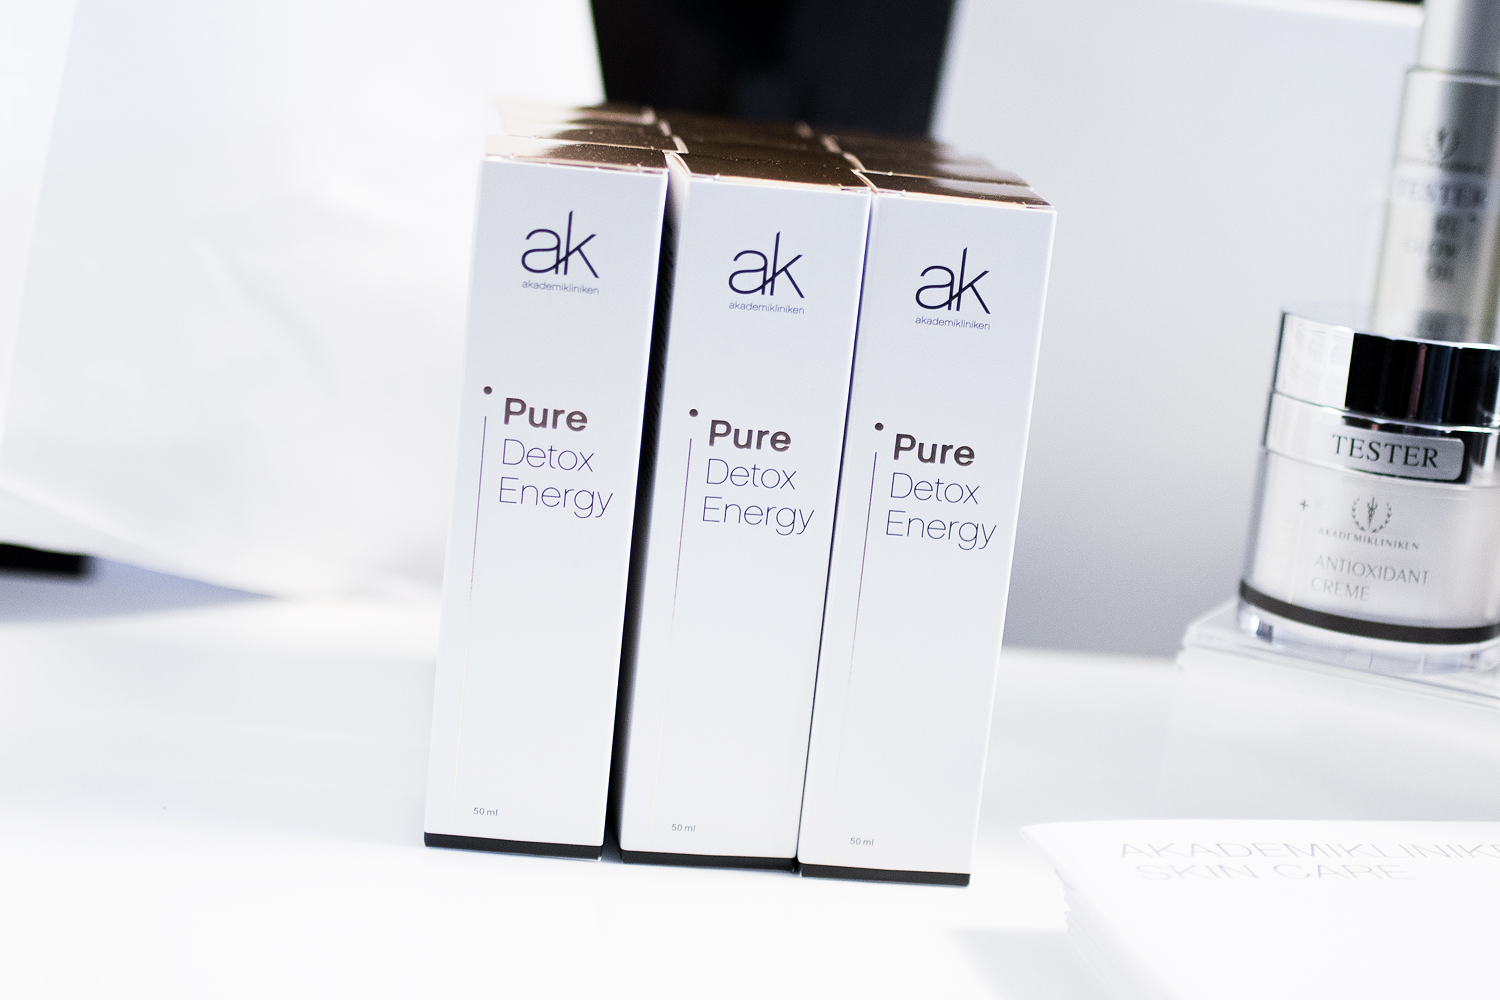 daisy beauty expo 2018 akademikliniken pure detox energy